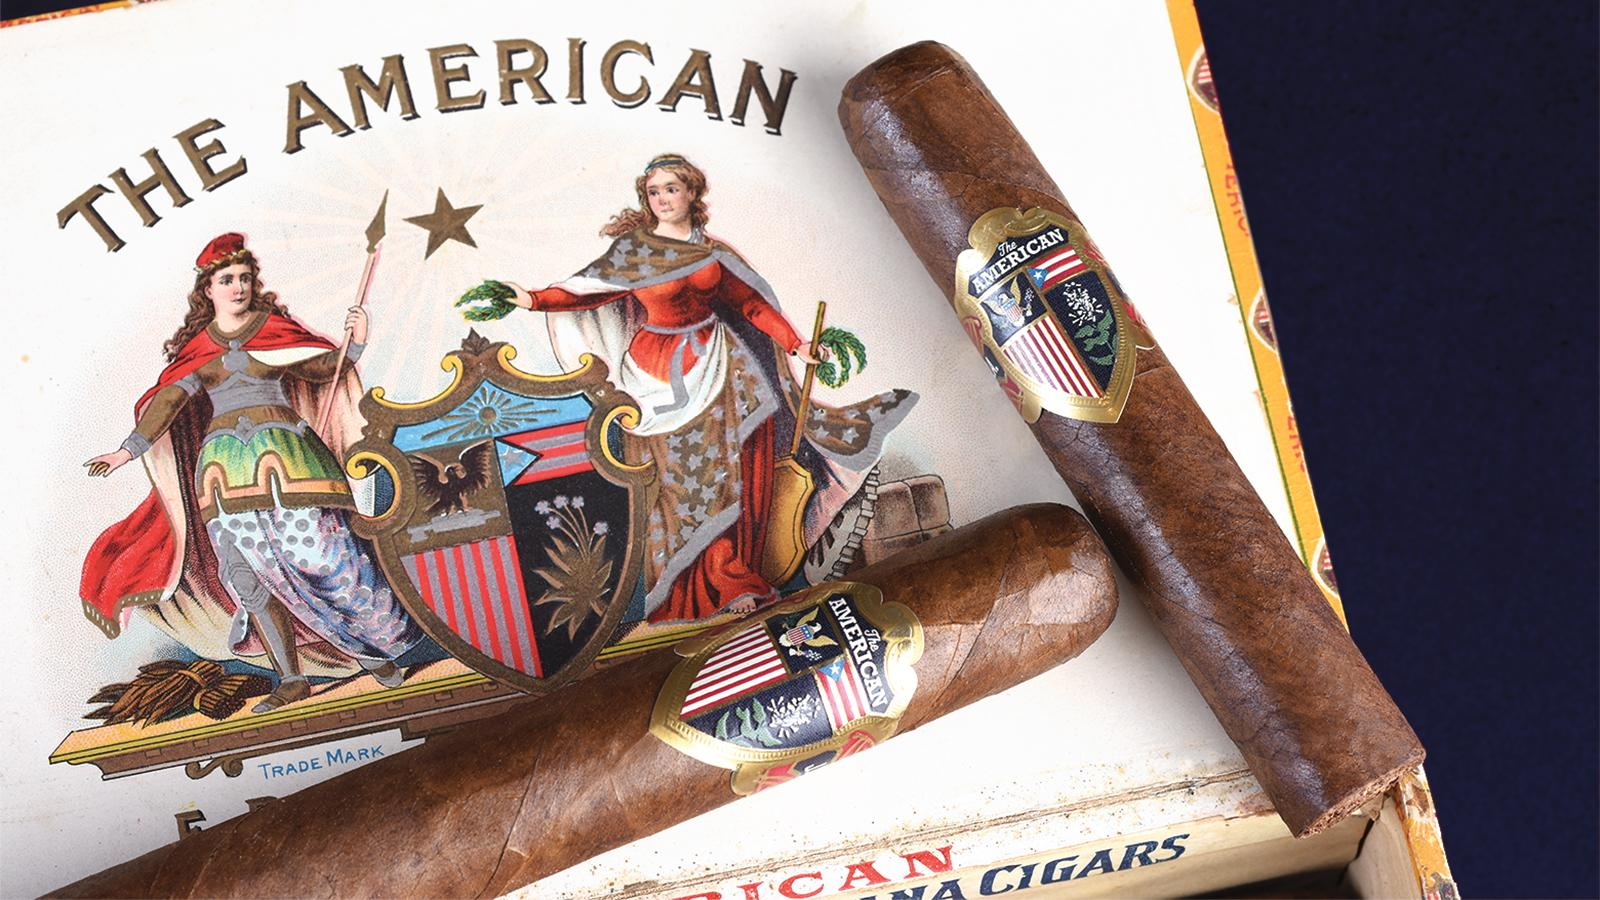 The American by J.C. Newman.